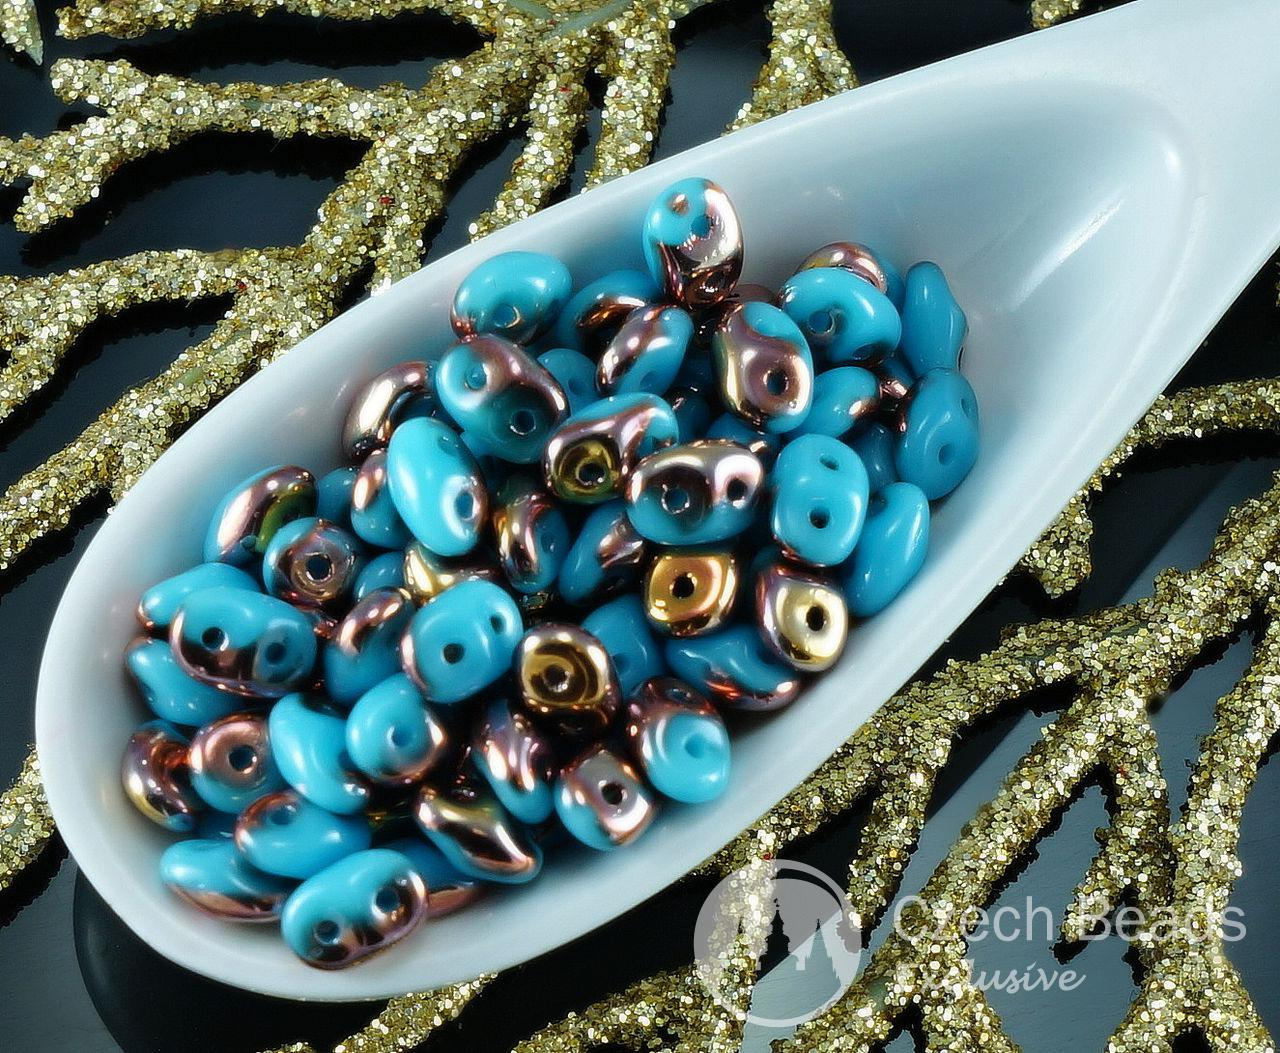 20g Turquoise Blue Gold Capri SUPERDUO Czech Glass Seed Beads Two Hole Super Duo 2.5mm x 5mm for $4.62 from Czech Beads Exclusive